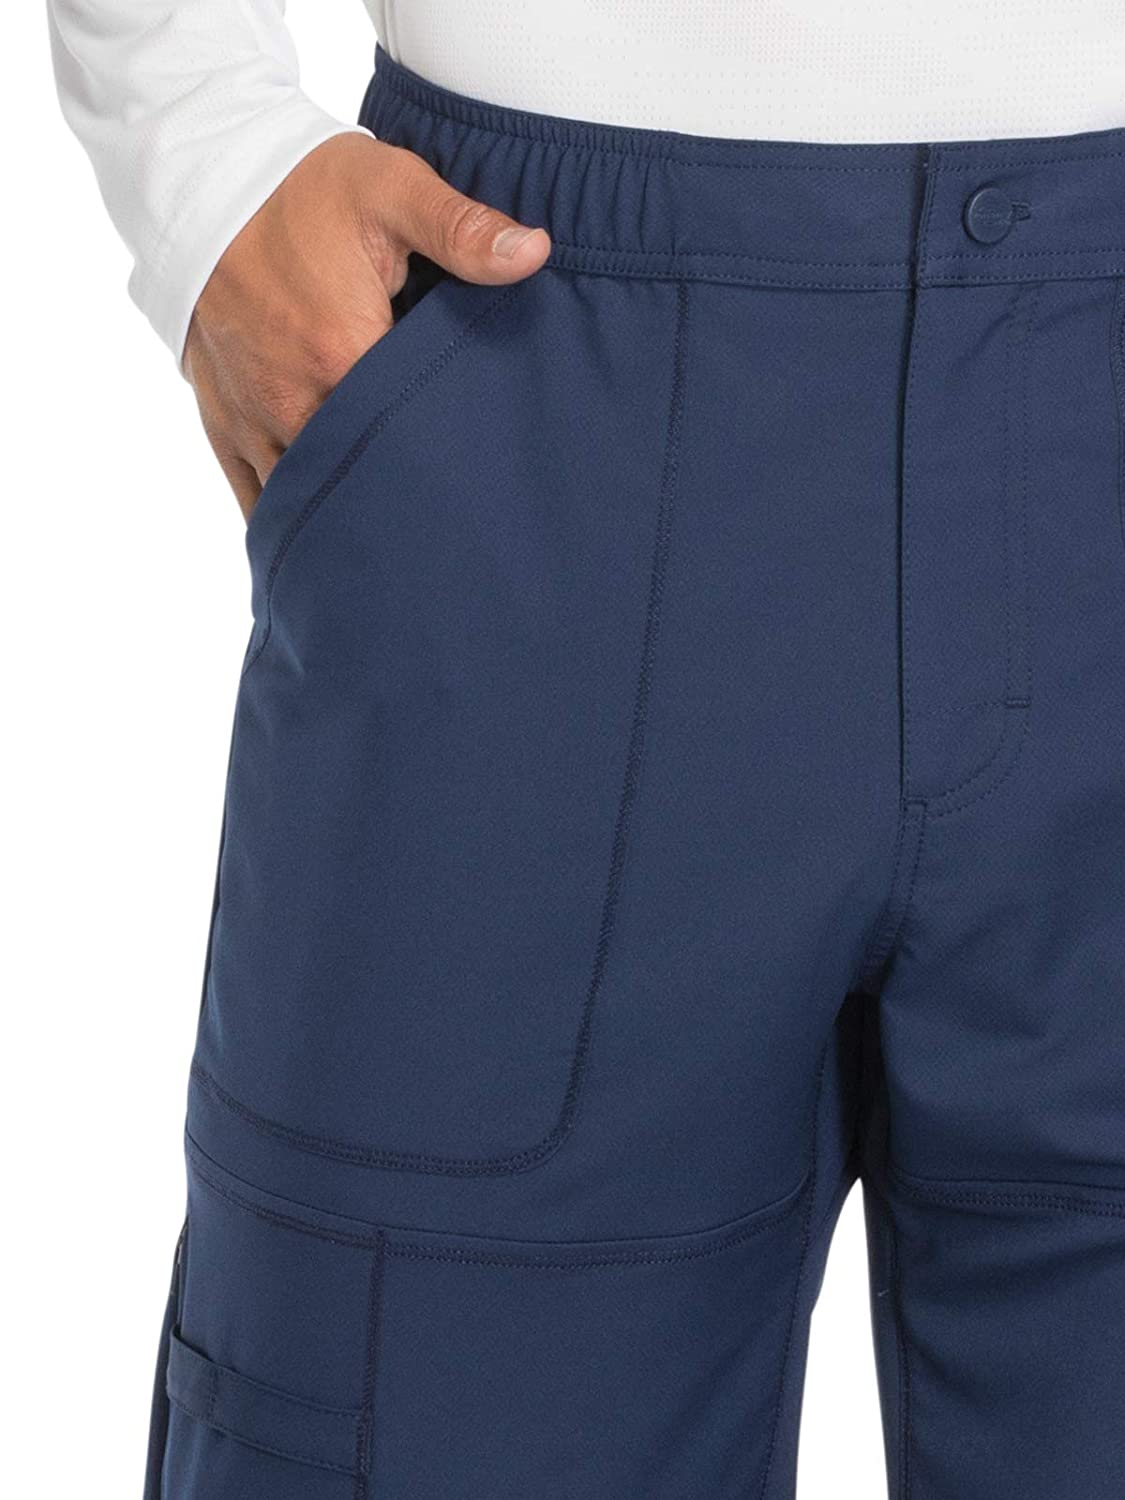 ab260f36c15 Amazon.com: Dickies Dynamix DK110 Men's Zip Fly Cargo Scrub Pant: Clothing